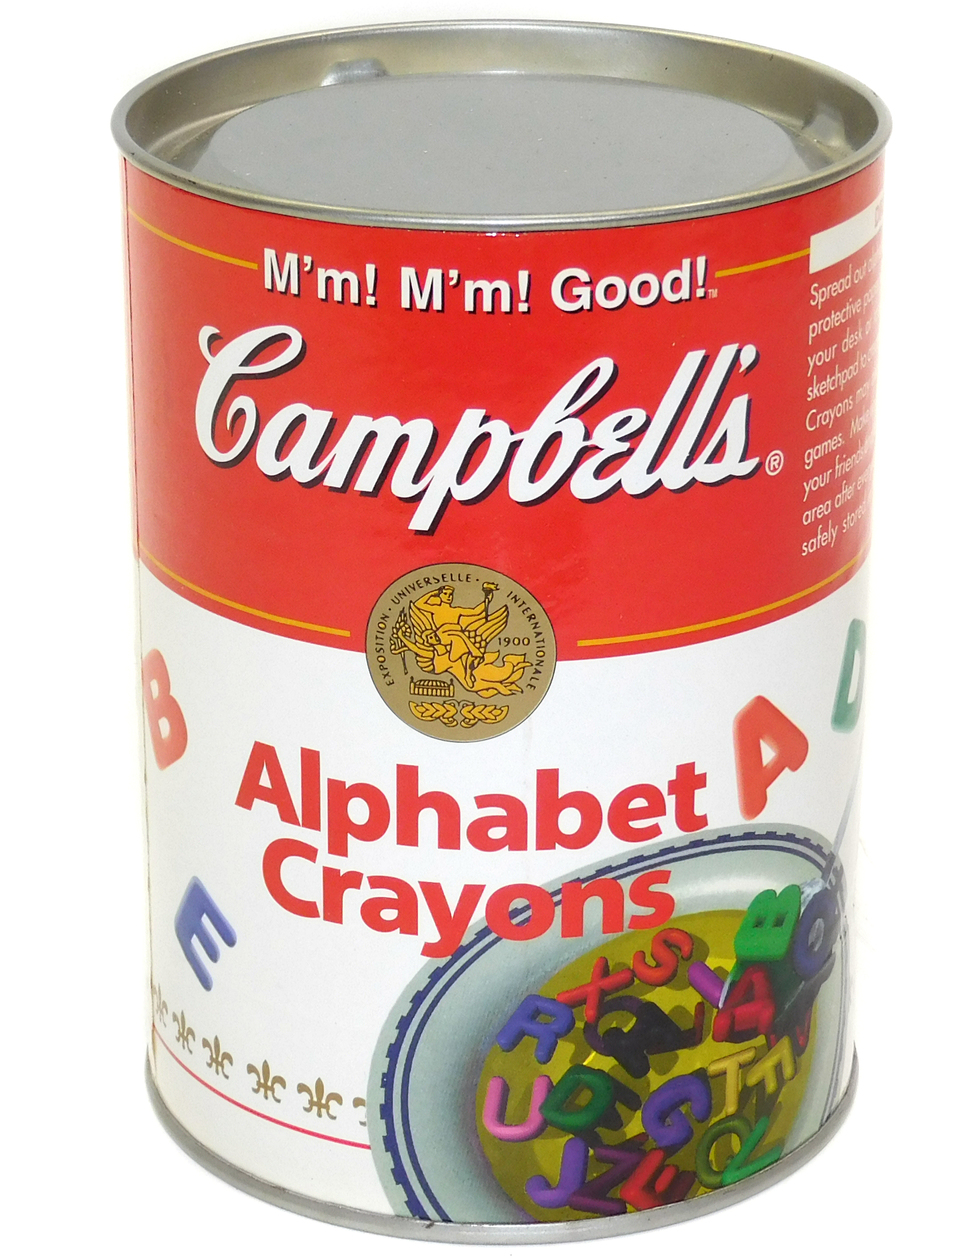 Vintage Nos 1998 Campbell S Soup Can Alphabet Crayons Tin With Contents In Can Campbell S Soup Cans Campbell Soup Alphabet Crayons